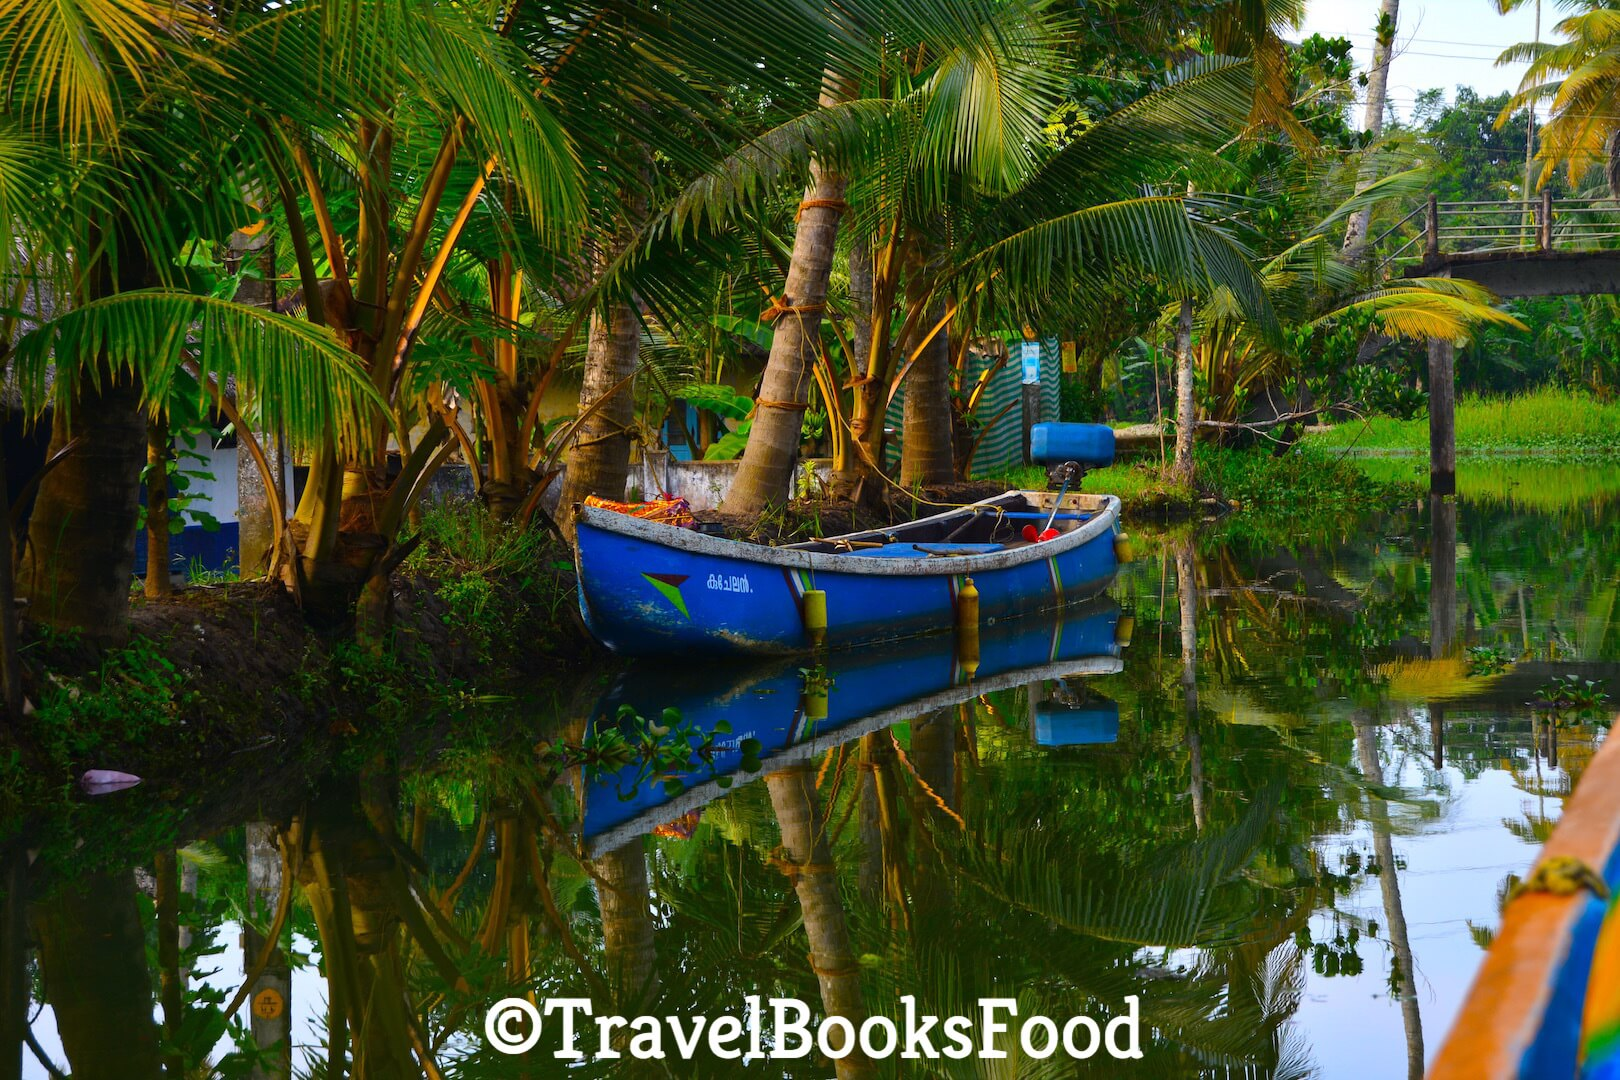 Photo of a blue fishing boat surrounded by coconut trees in Kerala, India